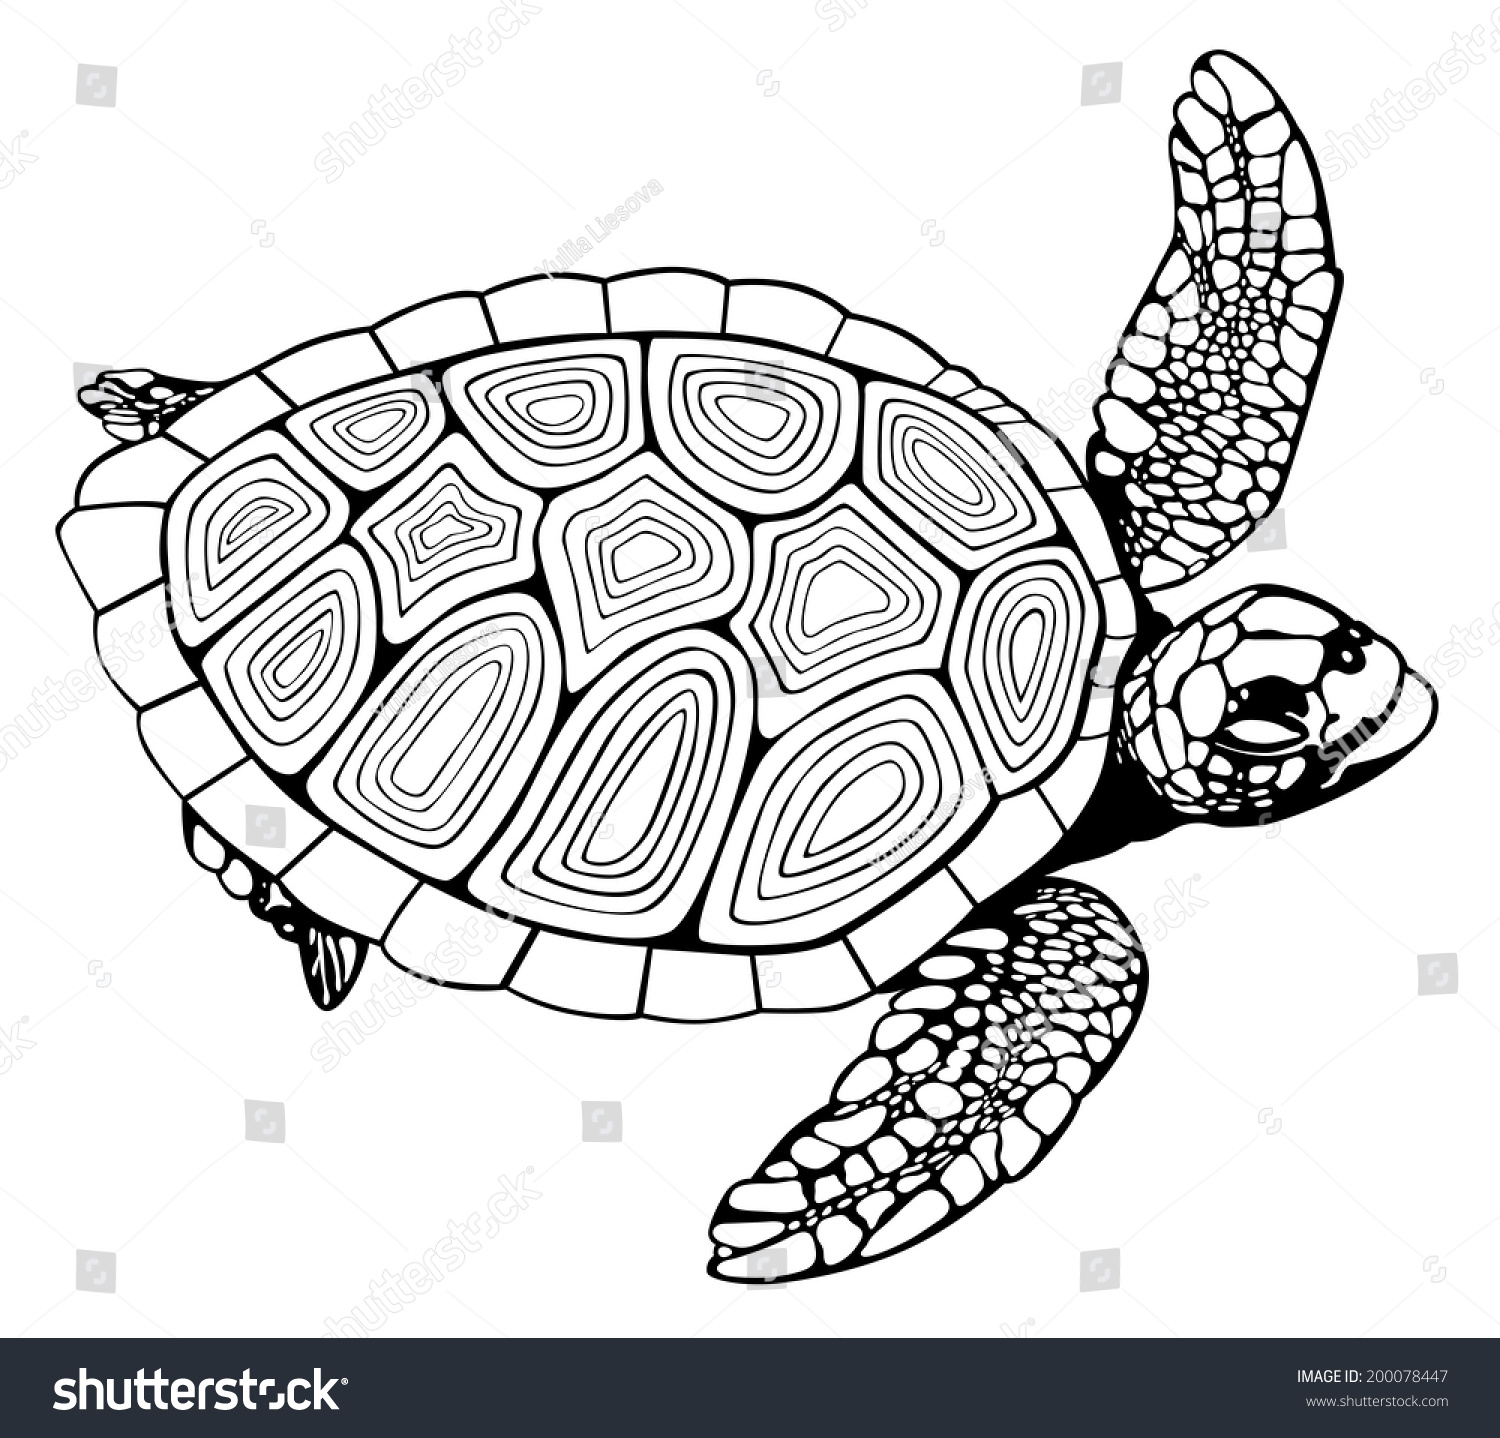 Coloring Book Turtle Stock Vector